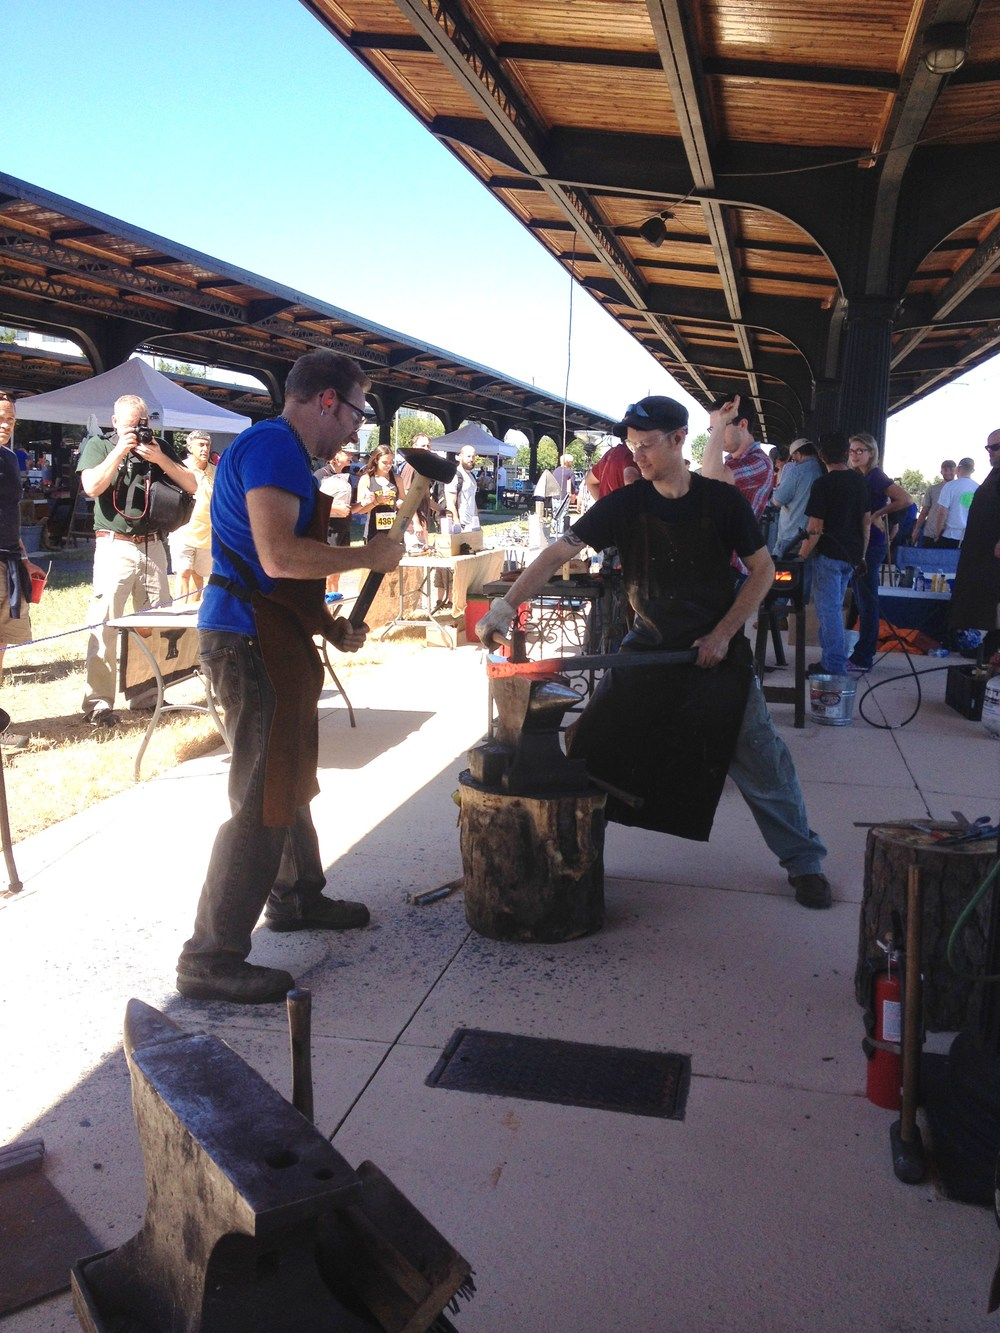 Kyle and friends, plus the gang from the Central Virginia Blacksmith Guild, spent the day demonstrating at the anvil.